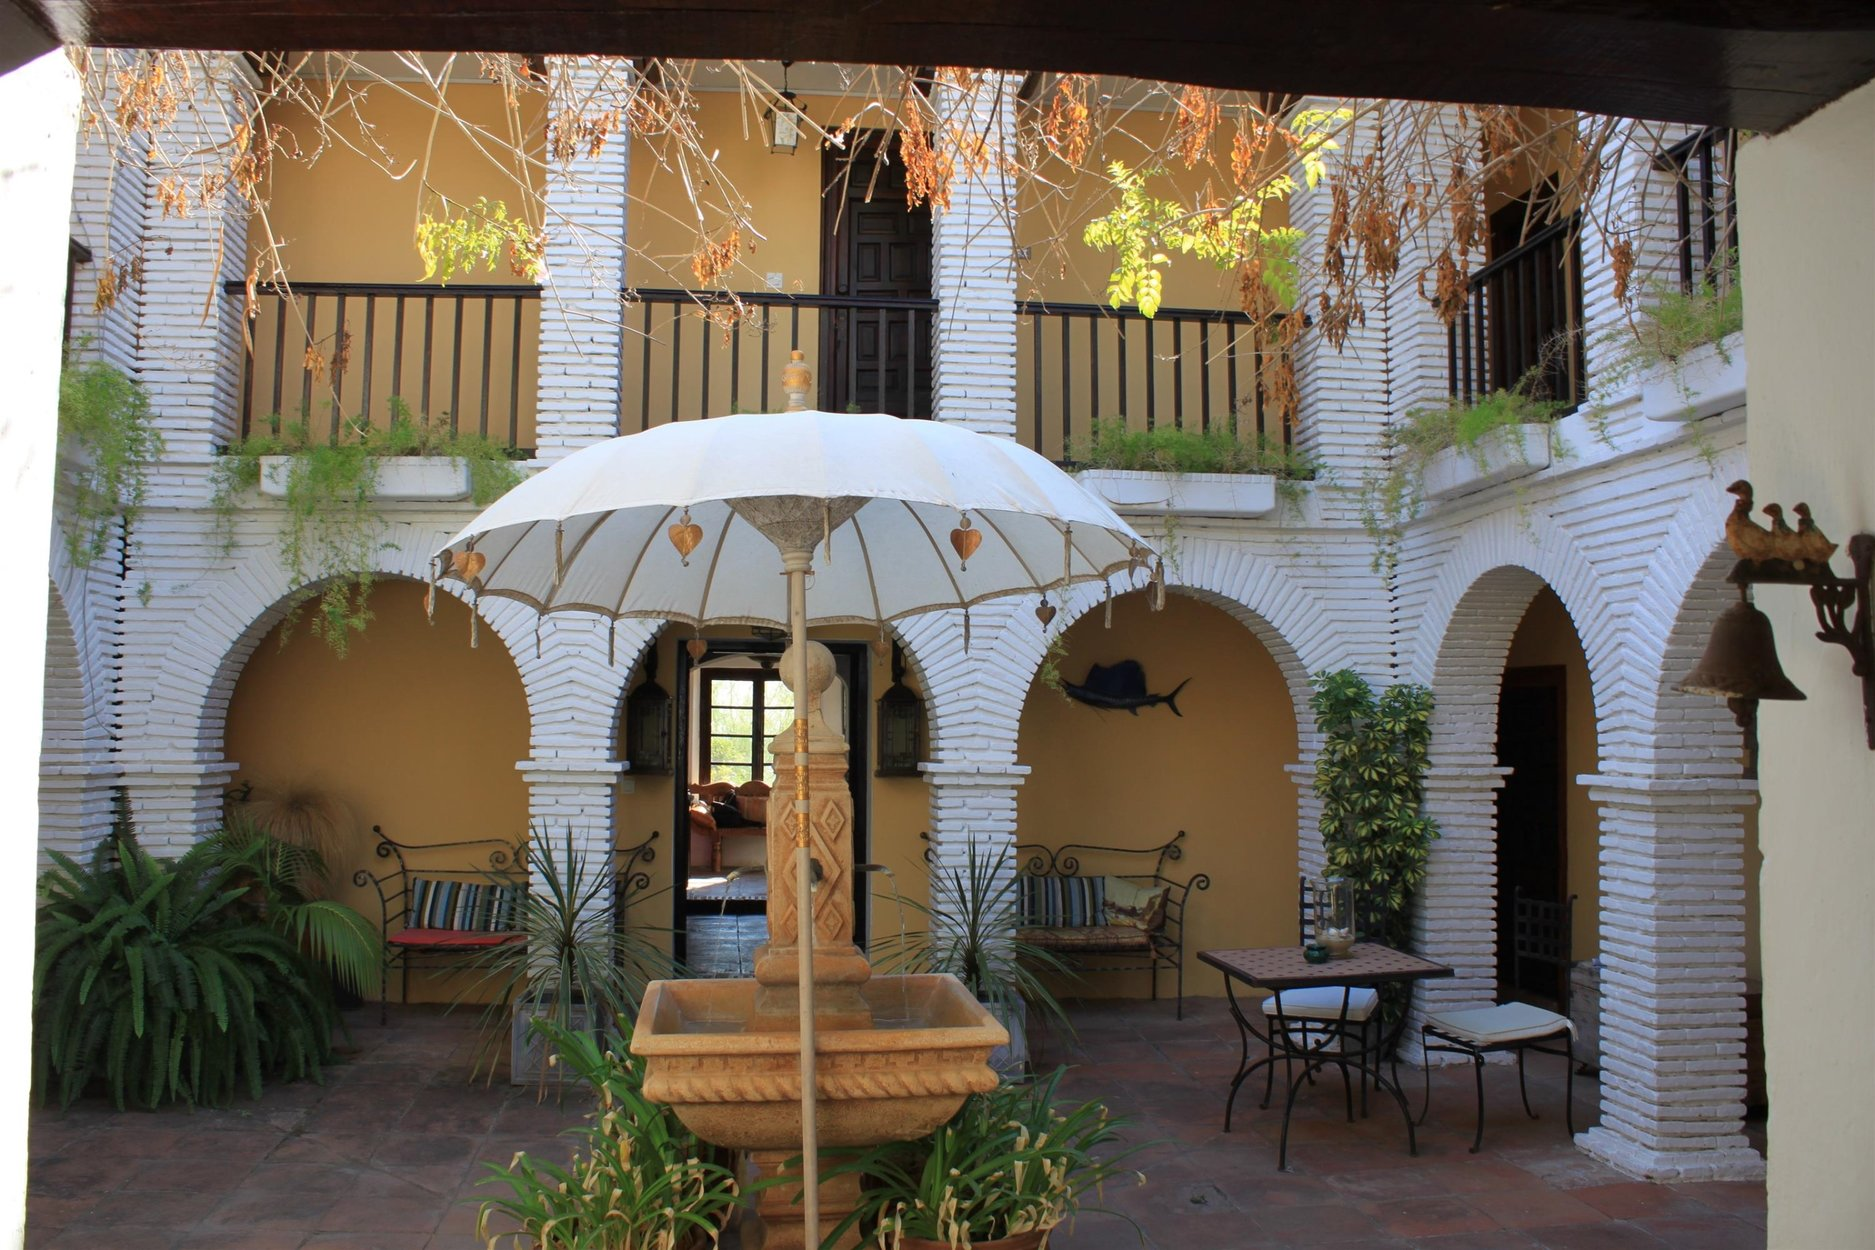 Hotel for sale in La Herradura - Granada